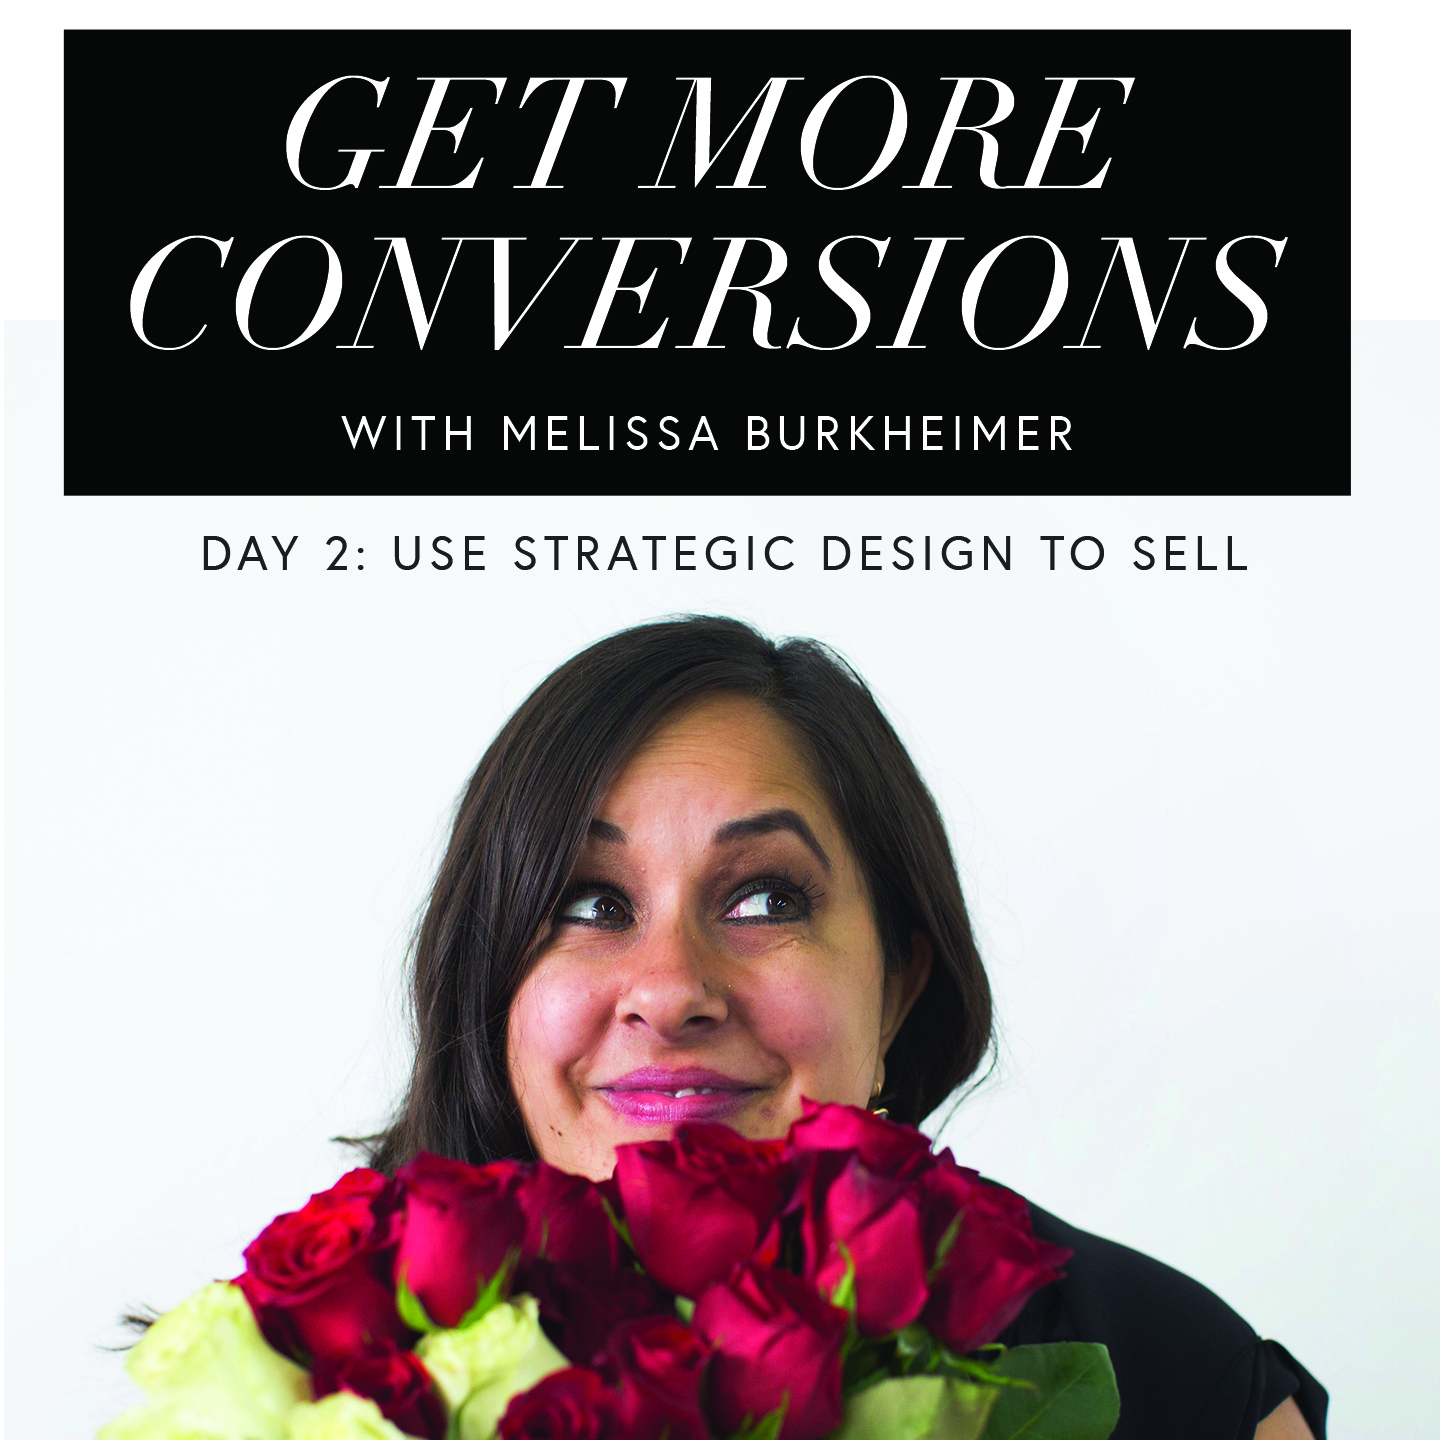 Check out episode 69 of The Design Business Show to learn how to sell your offers using strategic design.